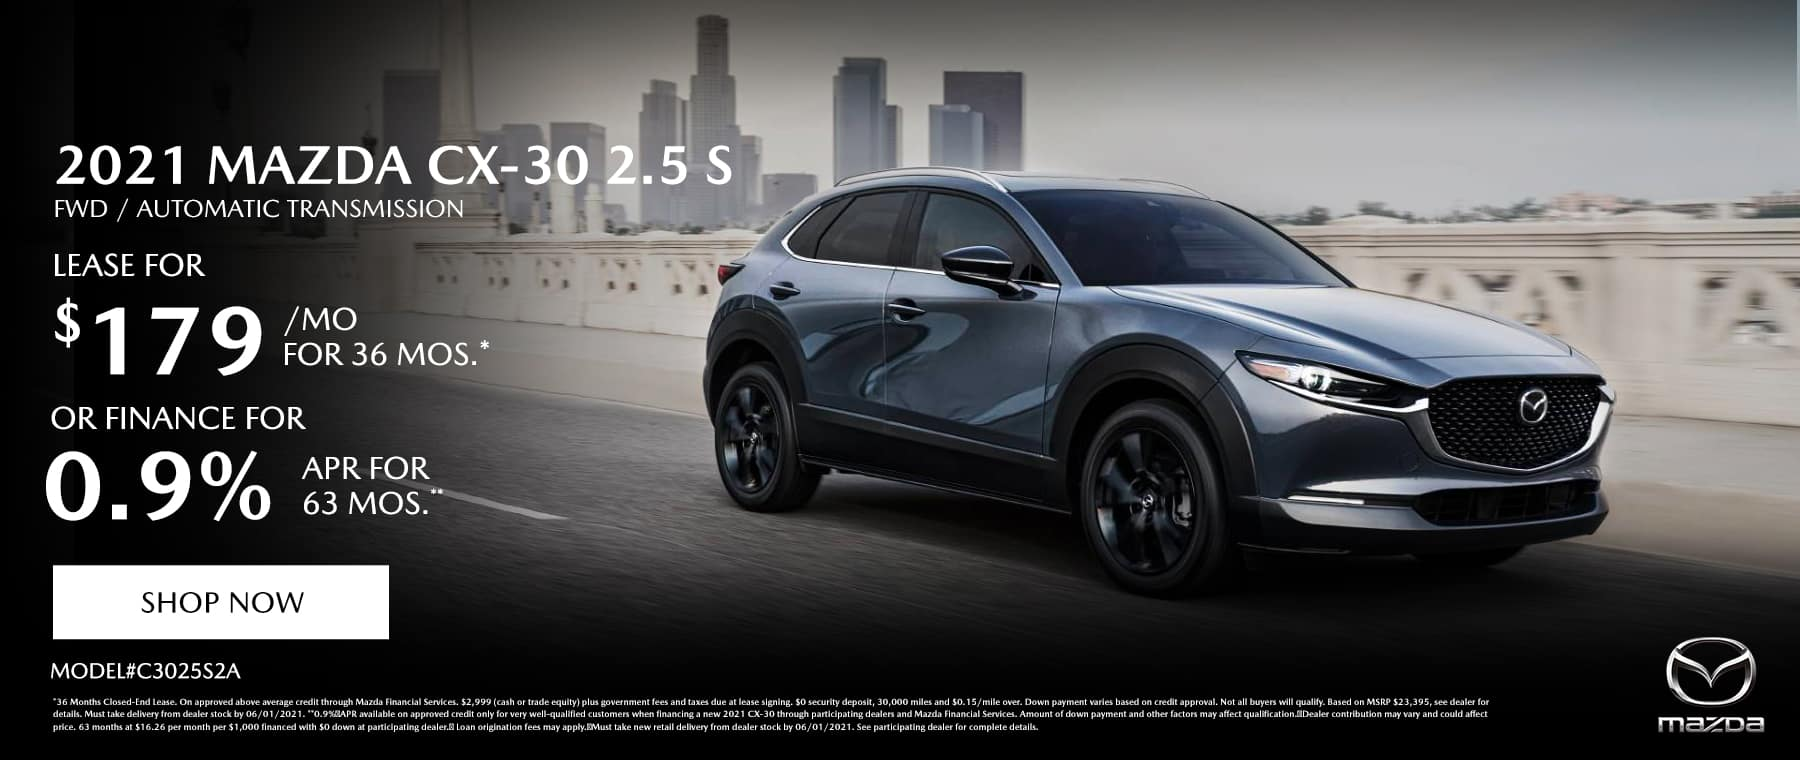 2021 MAZDA CX-30 2.5 S FWD AUTOMATIC (MODEL#C3025S2A) Lease Specials: $179/month @ 36 months* OR Special Finance: 0.9% APR for 63 Months**